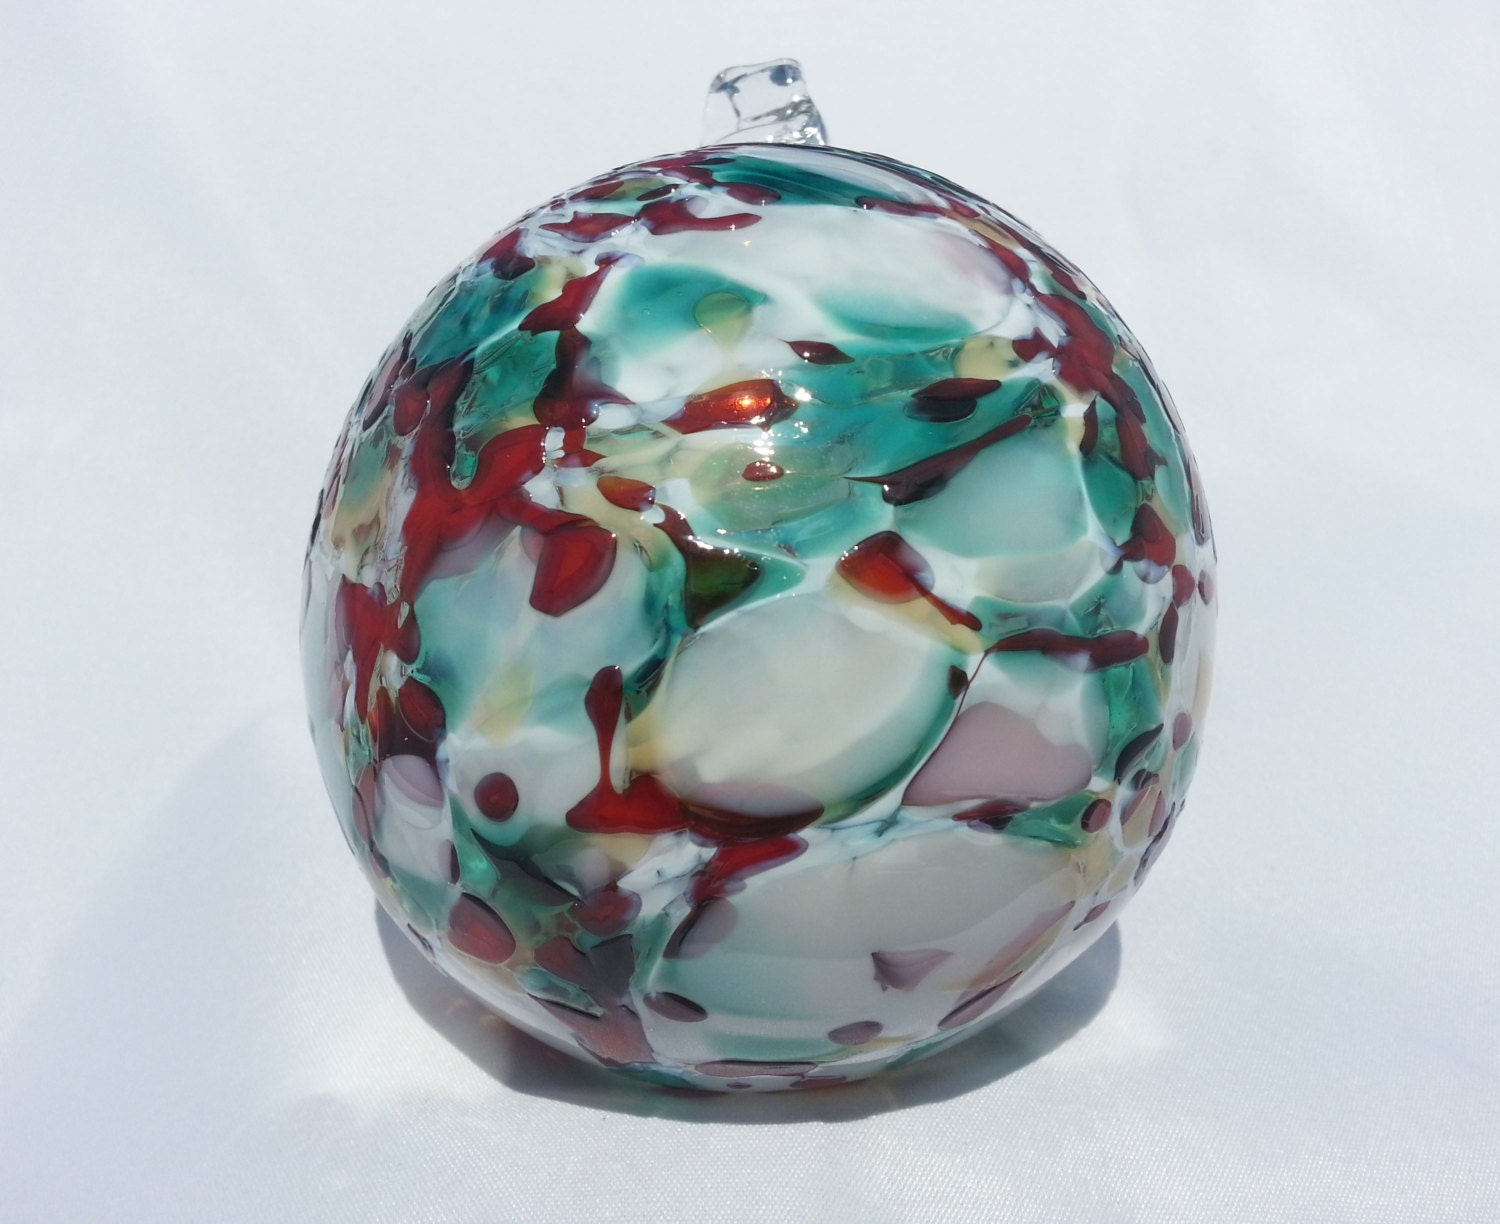 Blown glass ball ornaments handmade decorations christmas mix